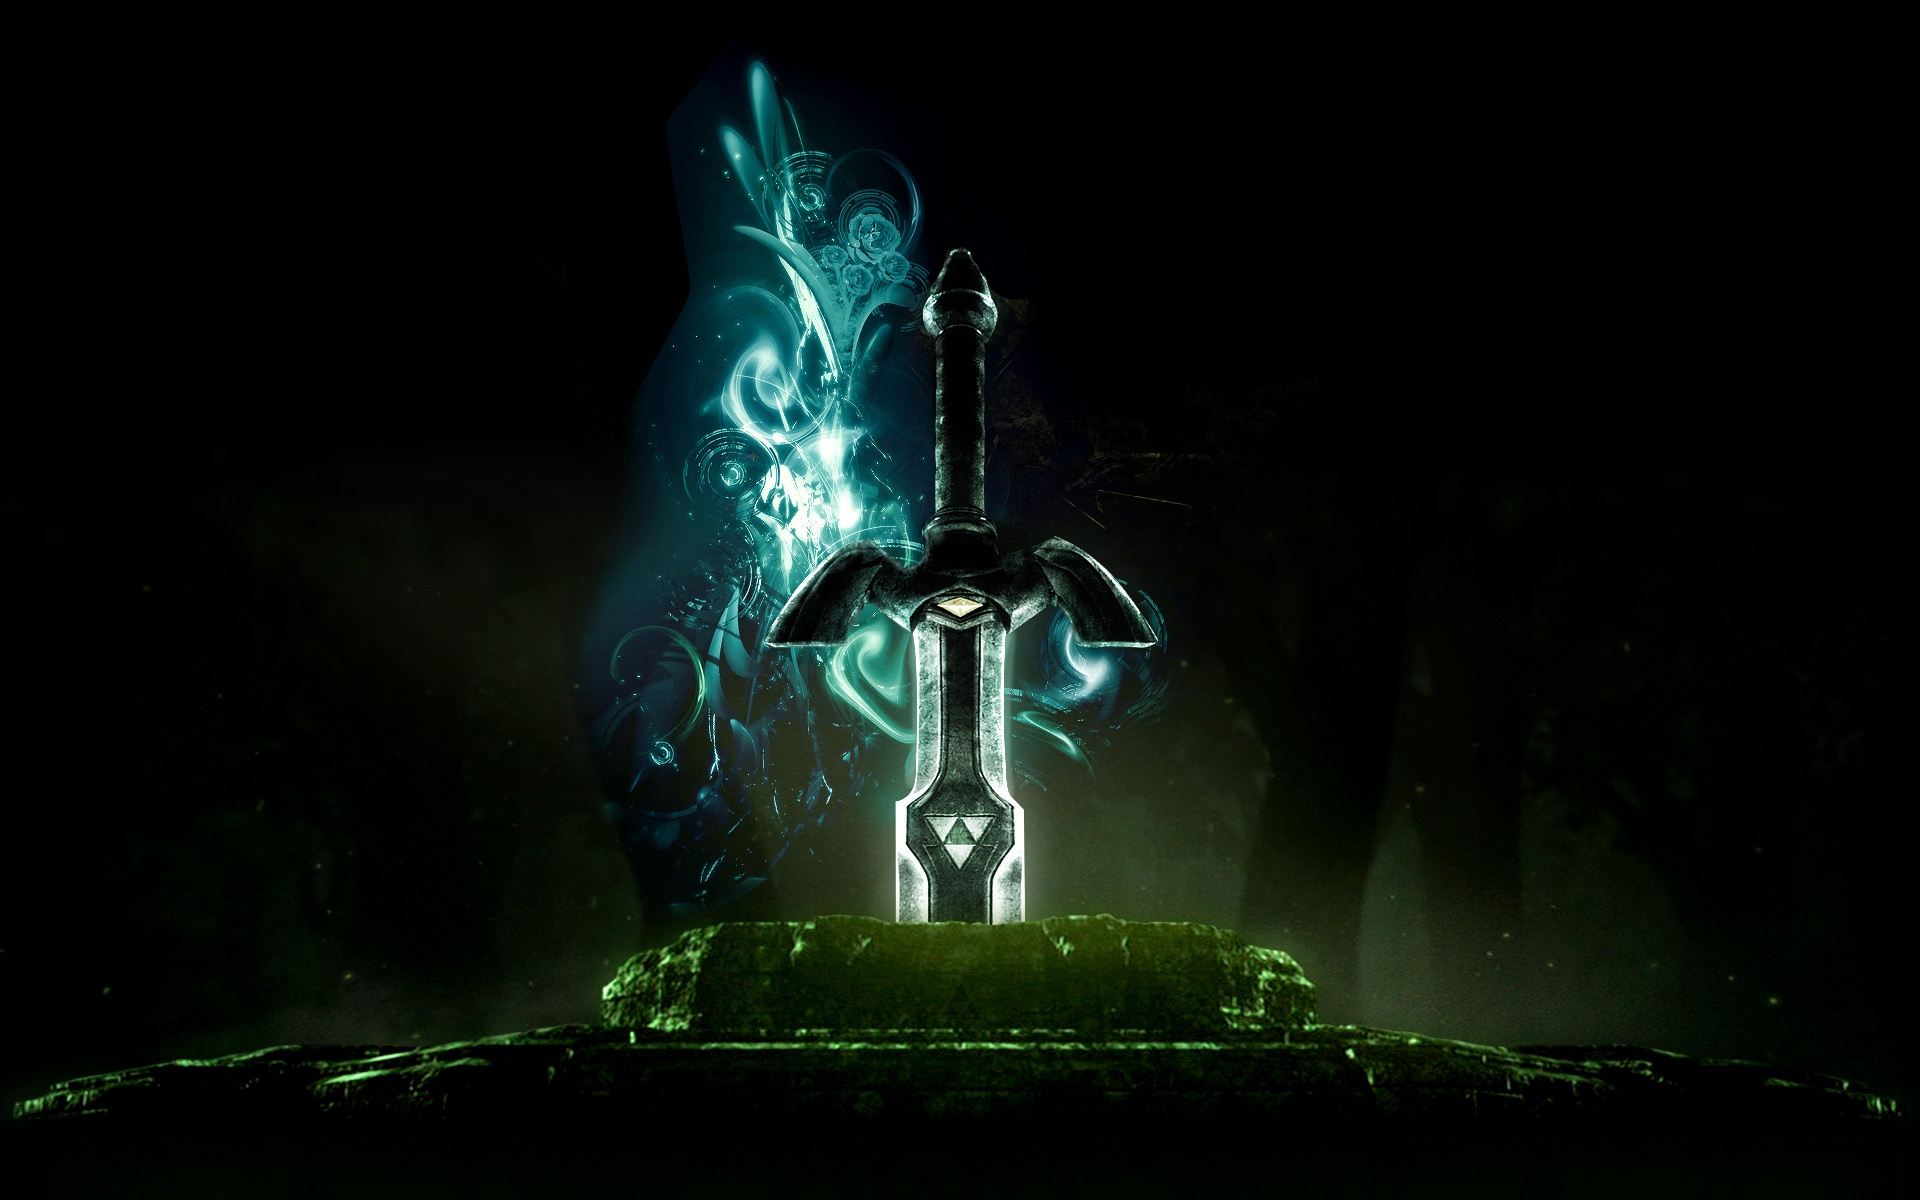 Zelda Images Background HD Wallpaper And Photos